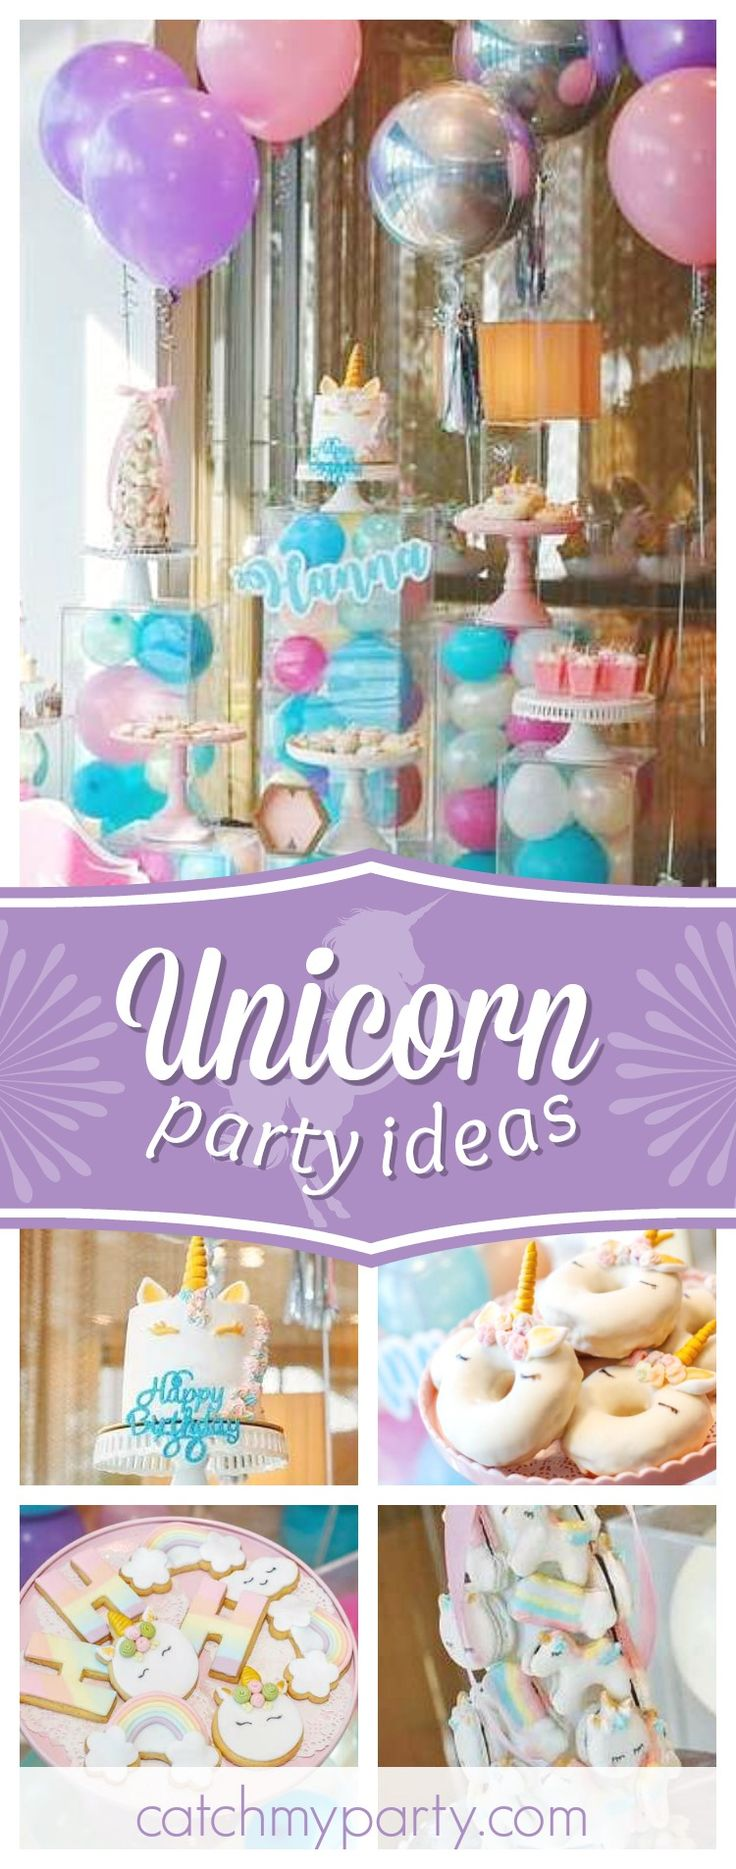 Don't miss this gorgeous unicorn birthday party! The unicorn donuts are too cute!! See more party ideas and share yours at CatchMyParty.com #unicorn #girlbirthday